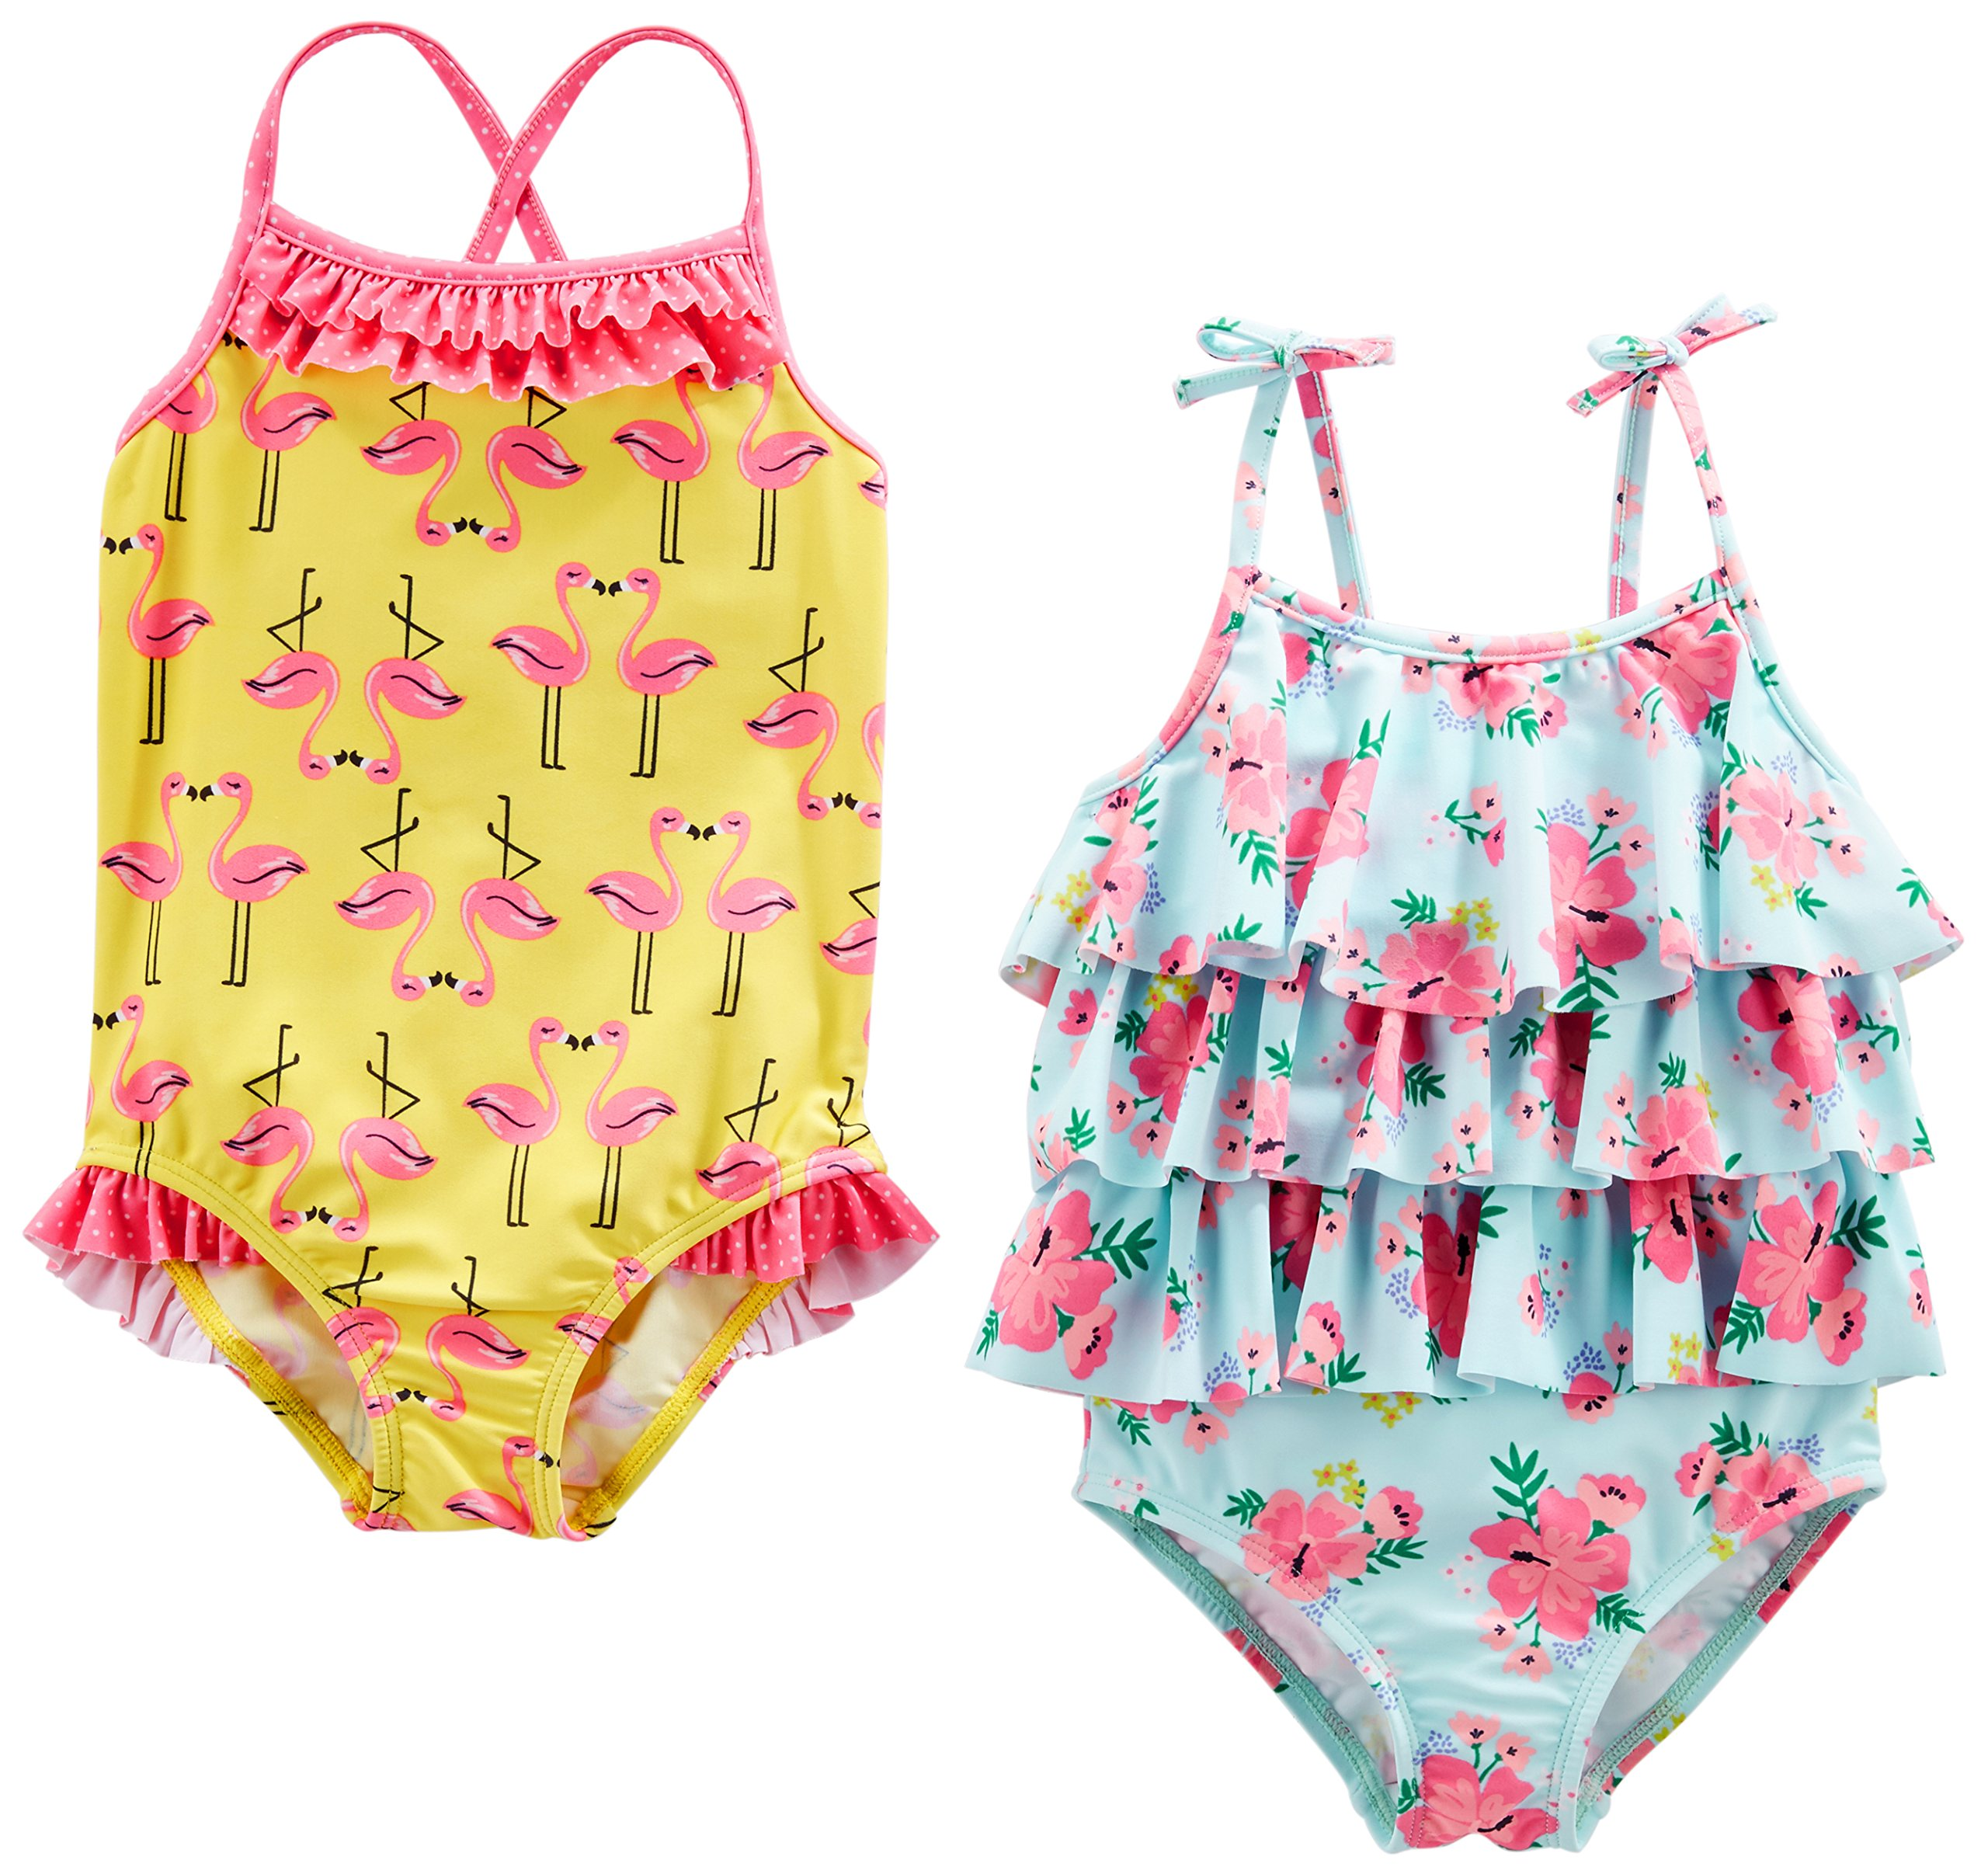 Simple Joys by Carter's Baby Girls' Toddler 2-Pack One-Piece Swimsuits, Yellow Flamingo/Blue Floral, 3T by Simple Joys by Carter's